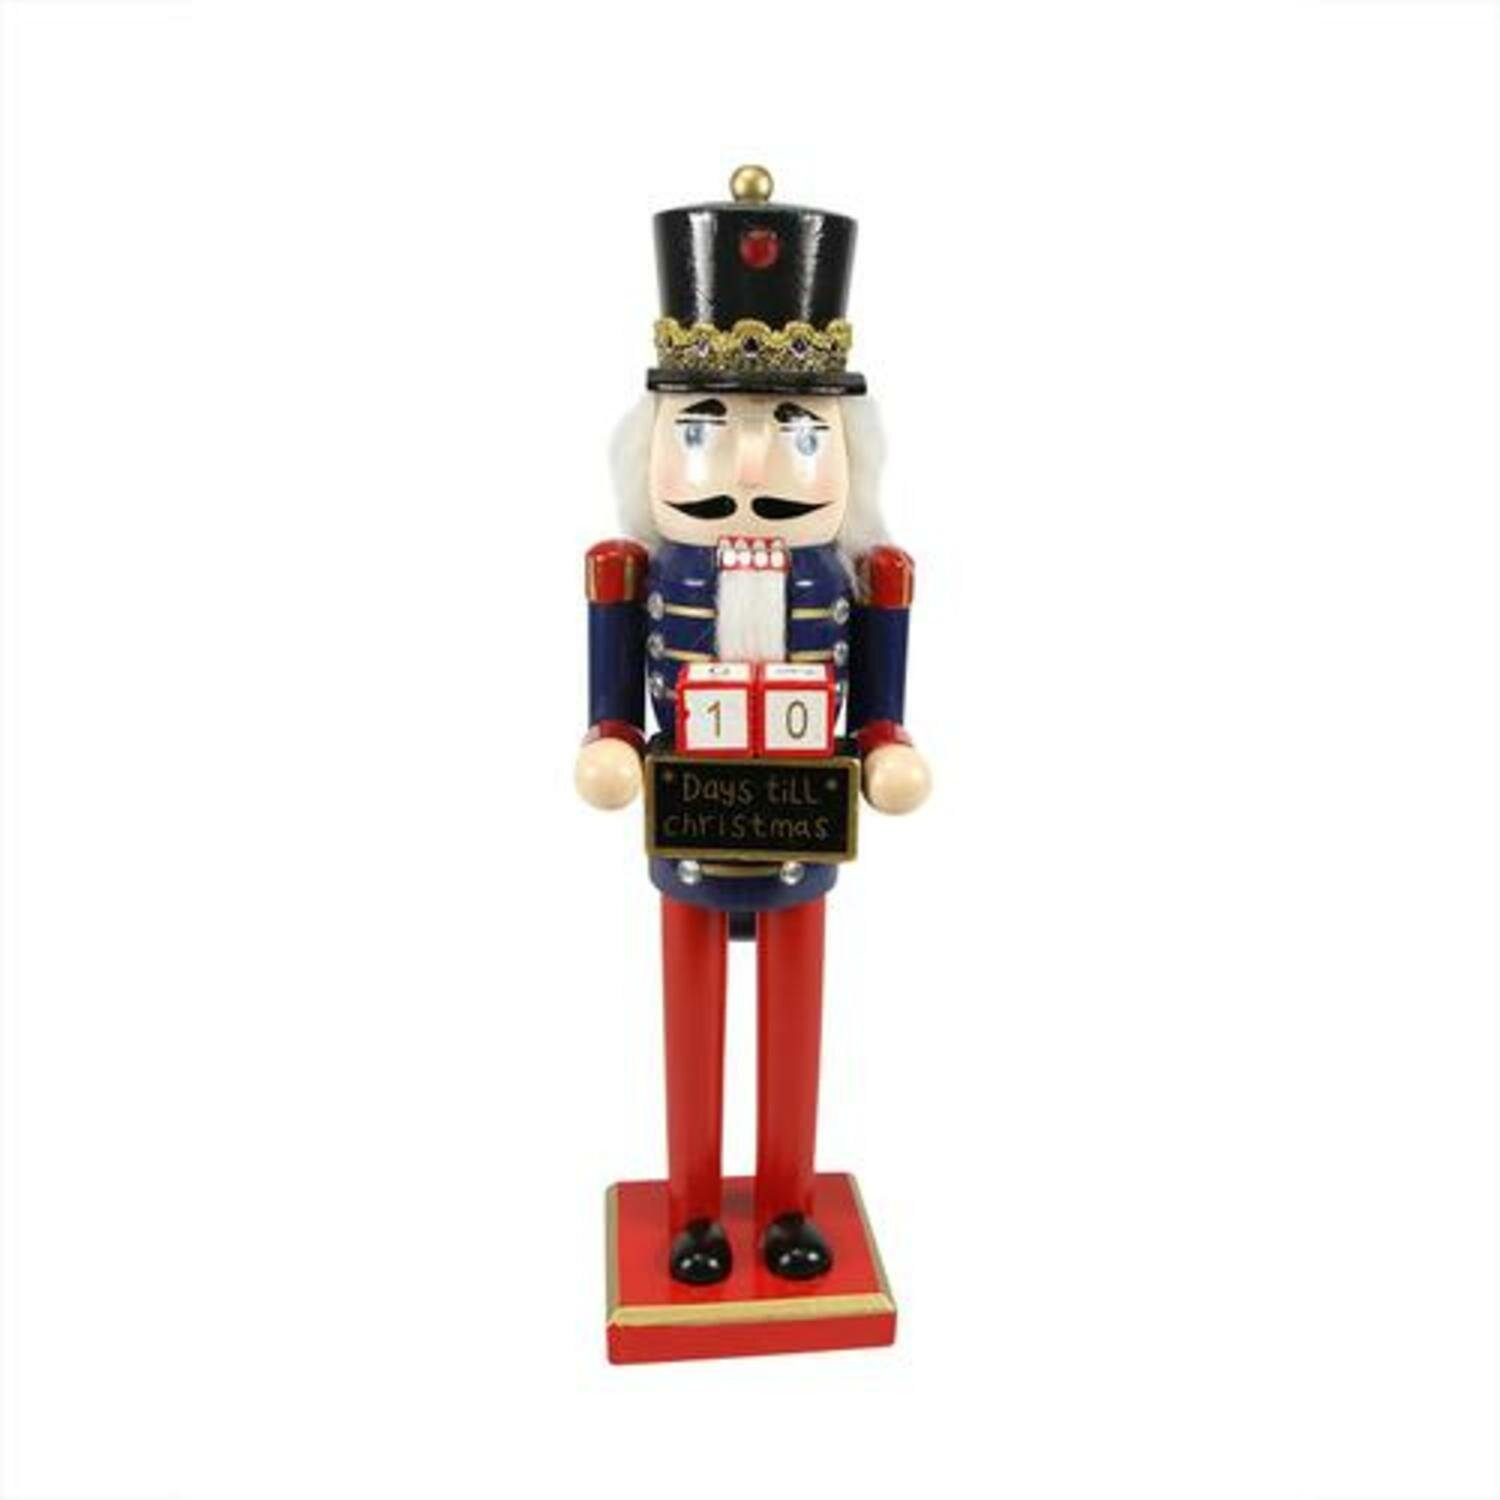 The Holiday Aisle Decorative Wooden Nutcracker with Christmas ...